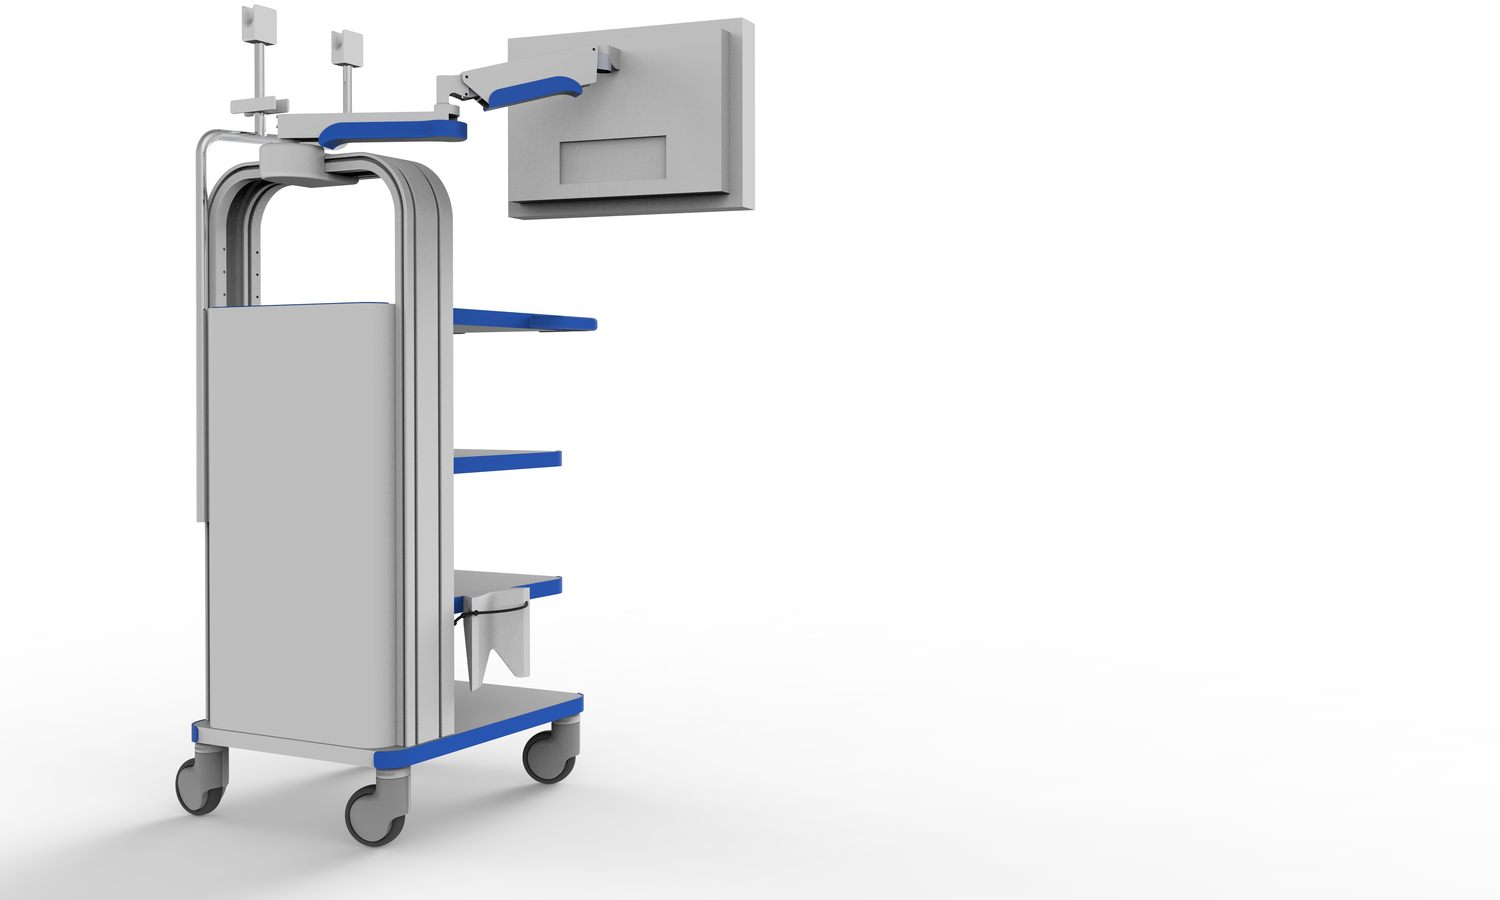 Workstation for Olympus Medical \u2014 7TH Design  Invention - Product